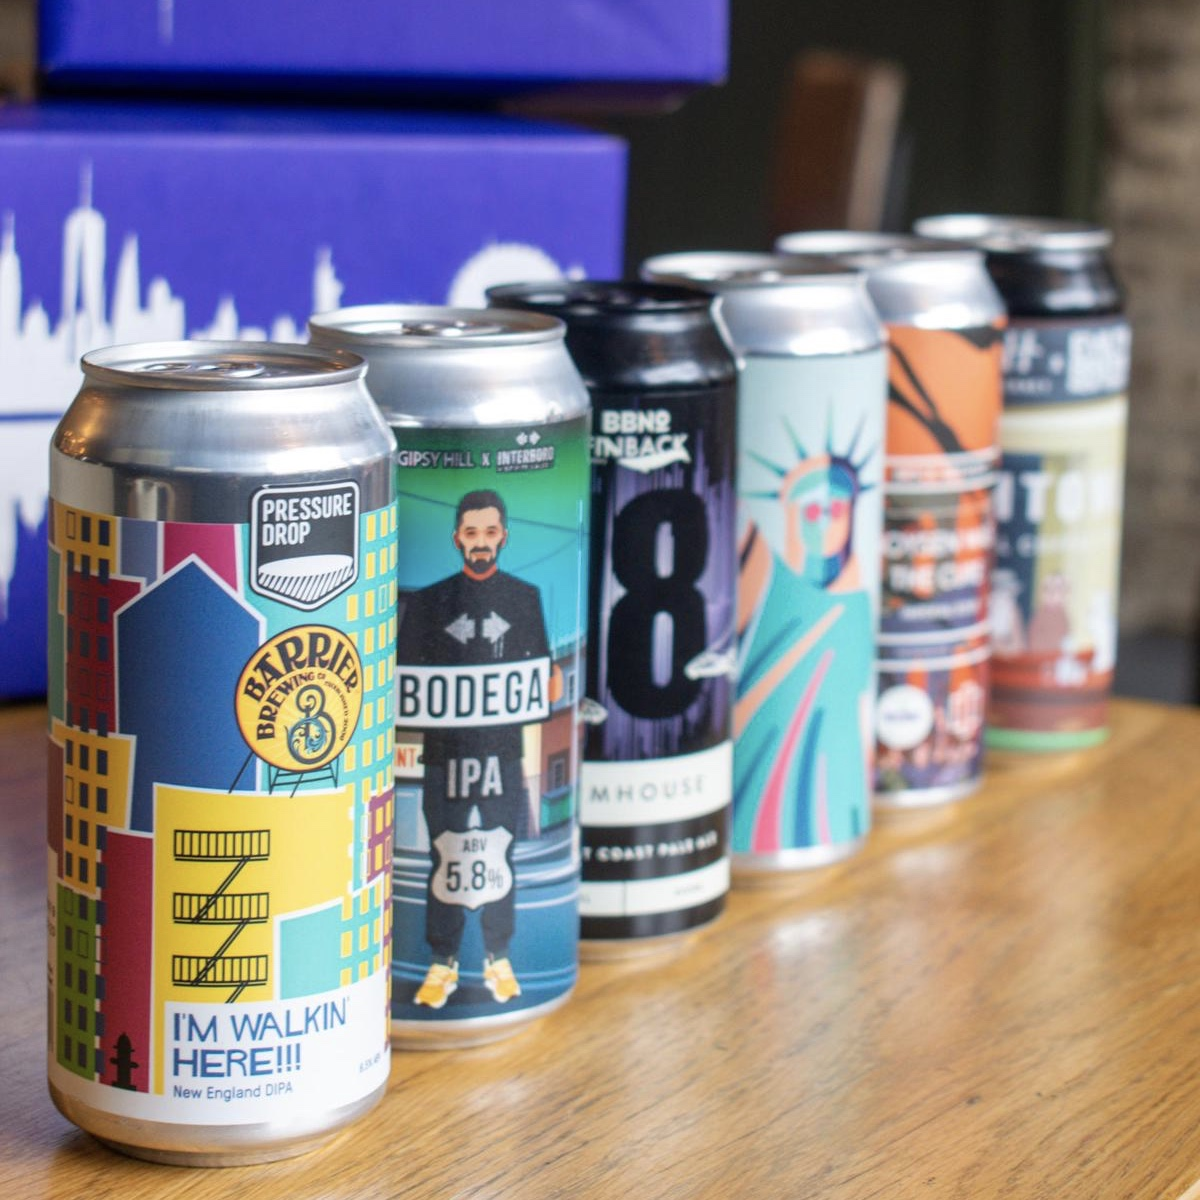 Alex's beer of the month - I'm loving The Skyline Project, which is a really exciting collaboration between 12 independent craft breweries from London and New York. This set of six beers was created to encourage new relationships and an interchange of brewing knowledge between two of the world's most iconic, exciting craft brewing cities, and is well worth checking out!